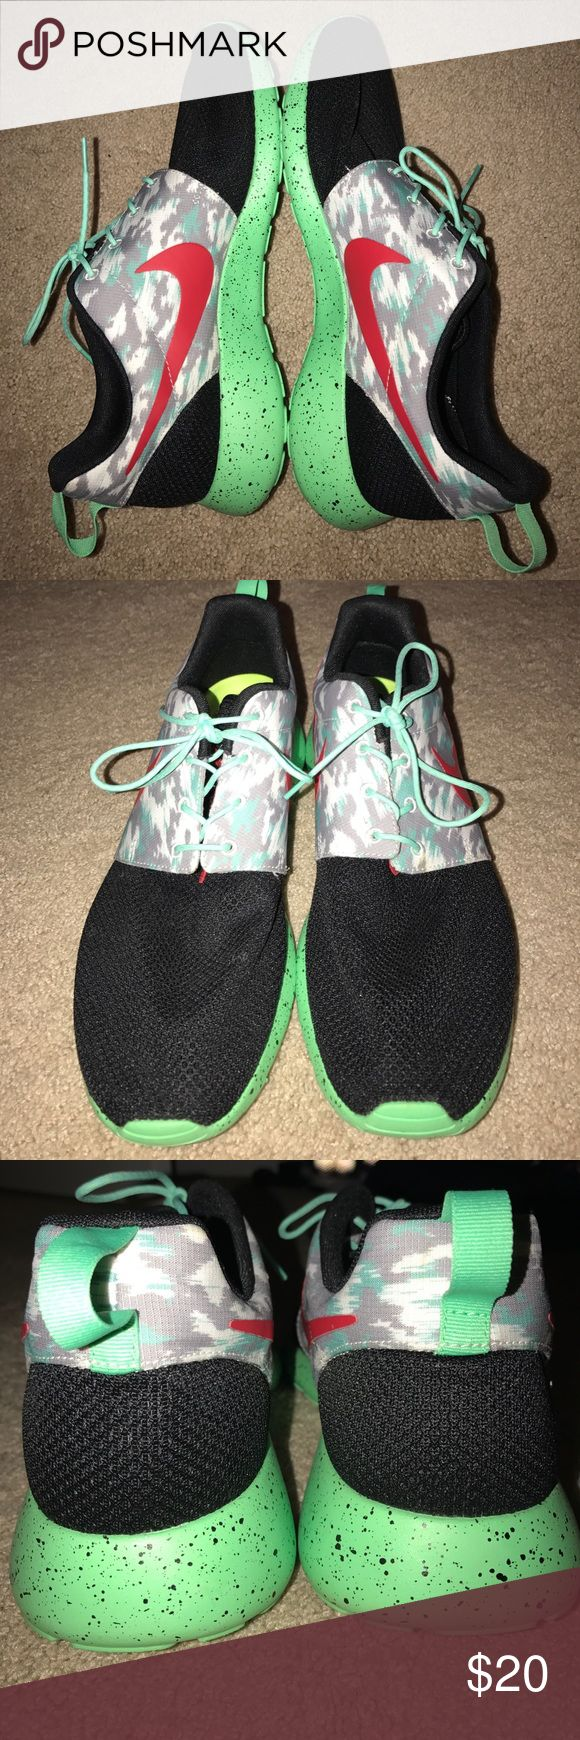 Nike Roshe Runs Perfect condition Roshe Runs by NikeID Nike Shoes Athletic Shoes